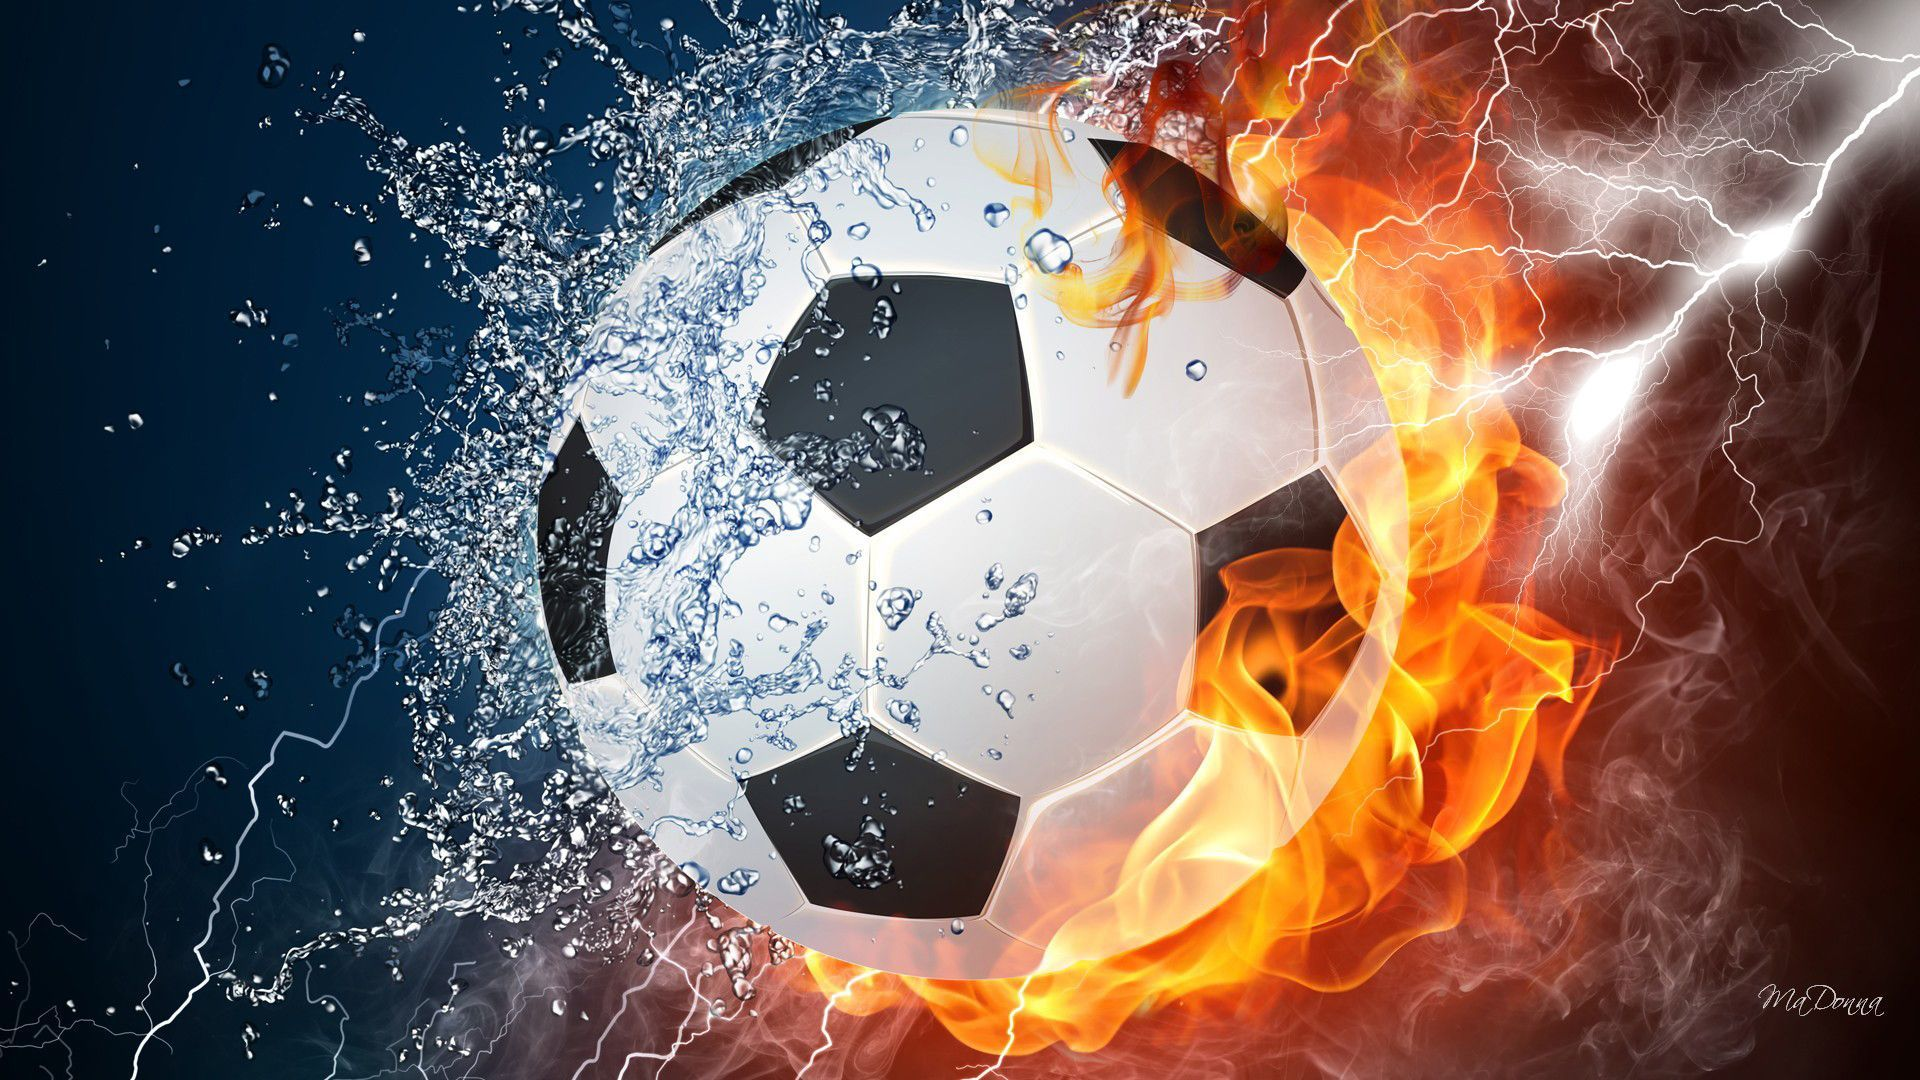 Cool Fire Backgrounds Wallpaper Cave Soccer Ball Soccer Balls Soccer